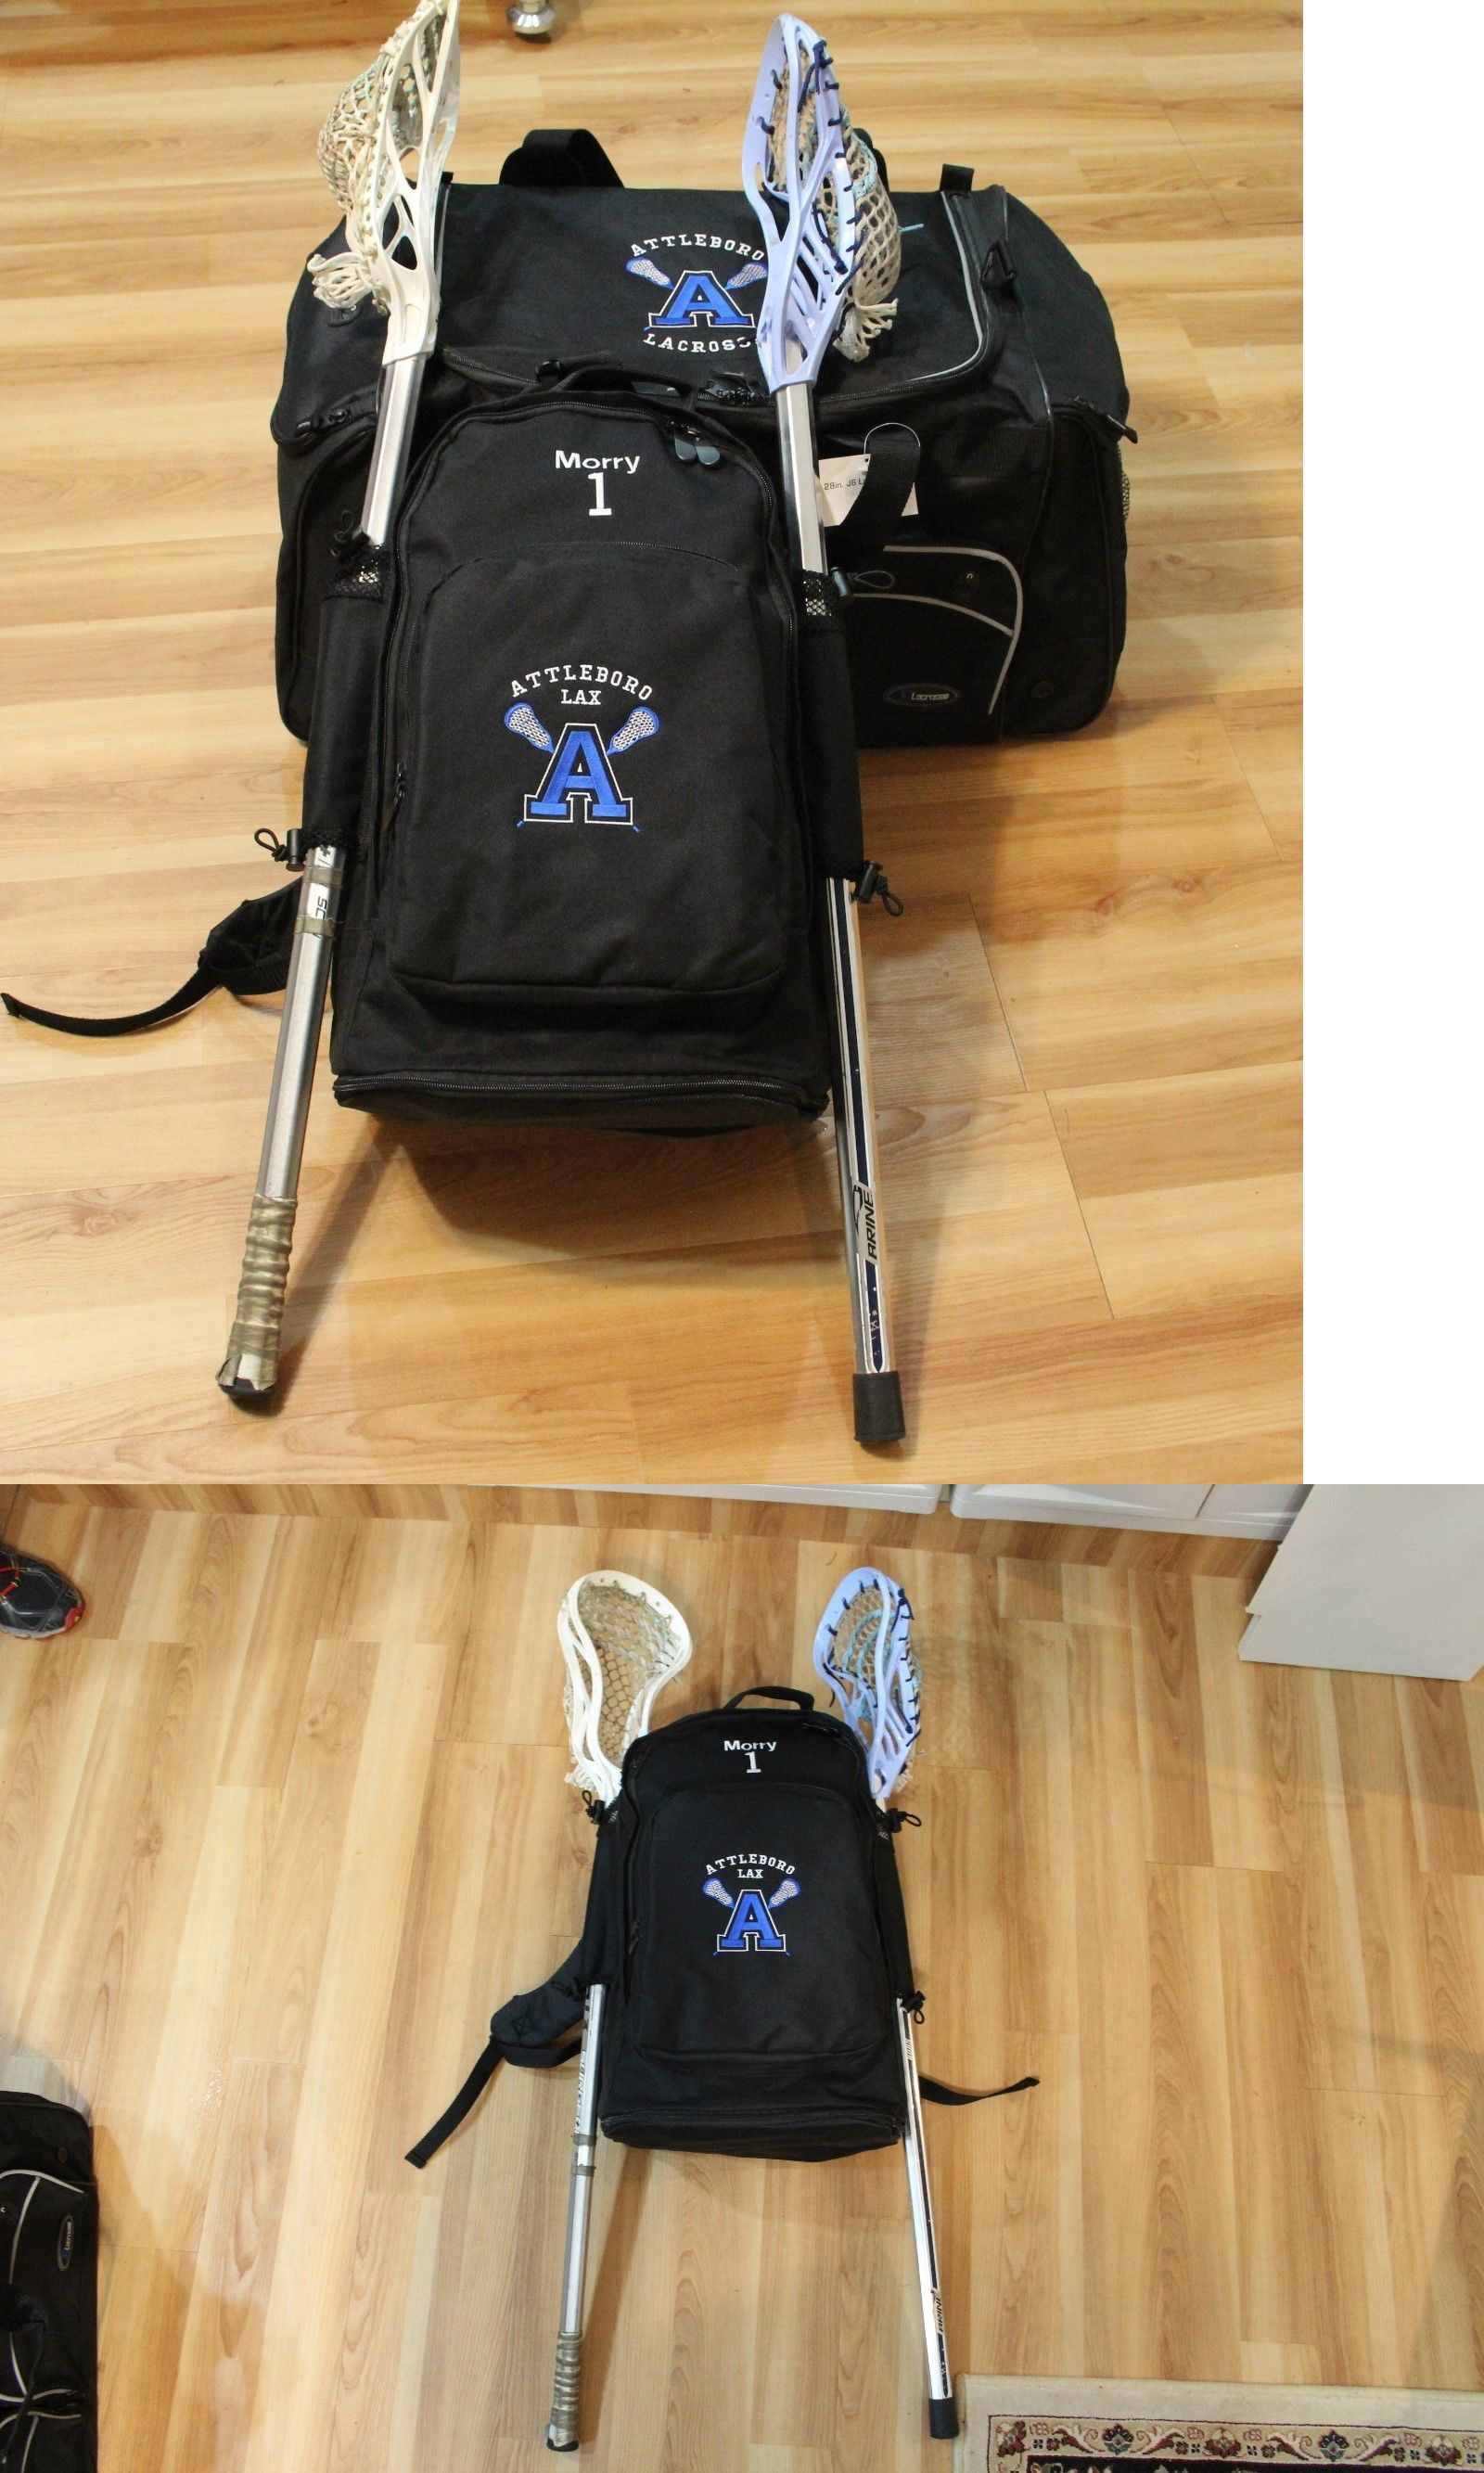 Clothing 159152: Personalized For Free Lax Backpack Deluxe Bag Has Two  Lacrosse Stick Holders Buy · Lacrosse Sticksphoto Charmspandora